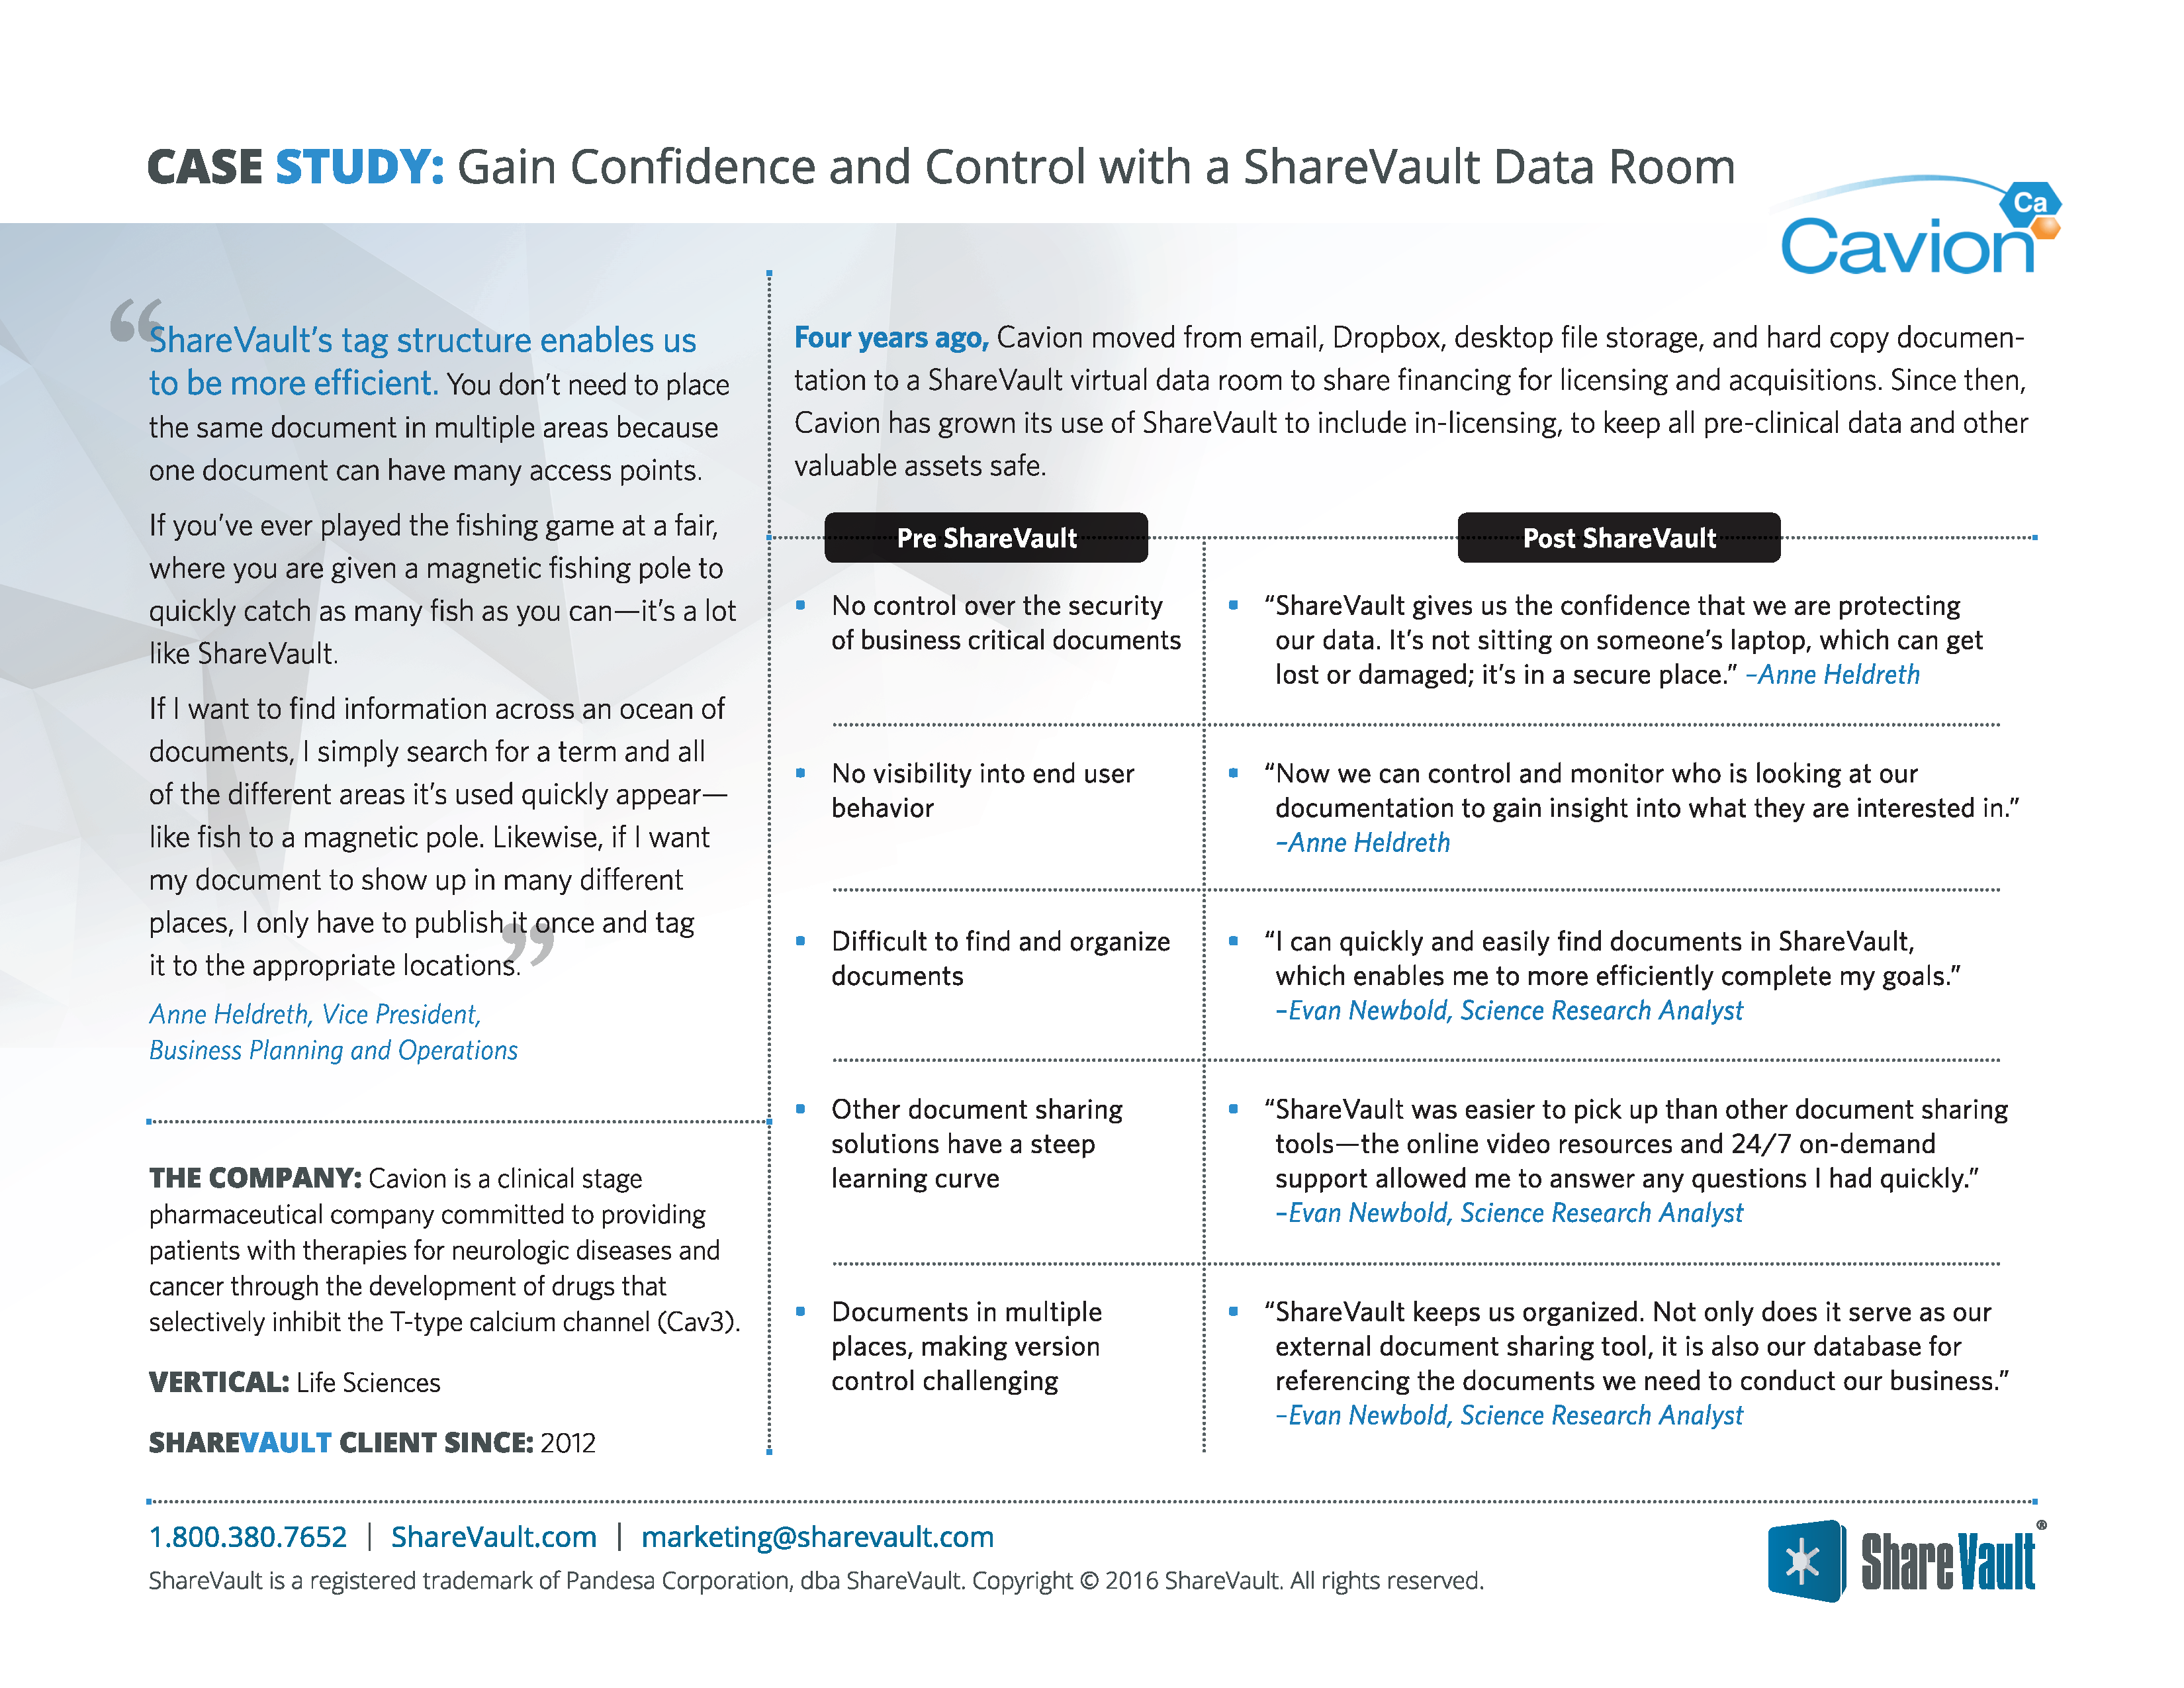 Gain Confidence and Control with a ShareVault Data Room